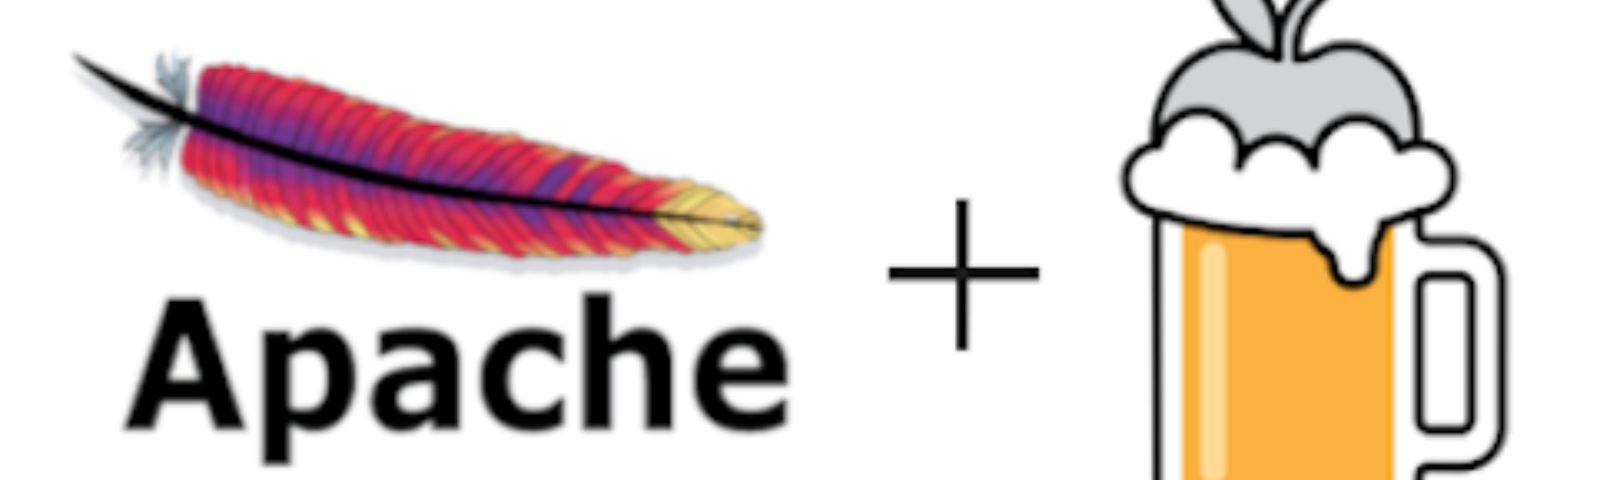 How to download apache on mac